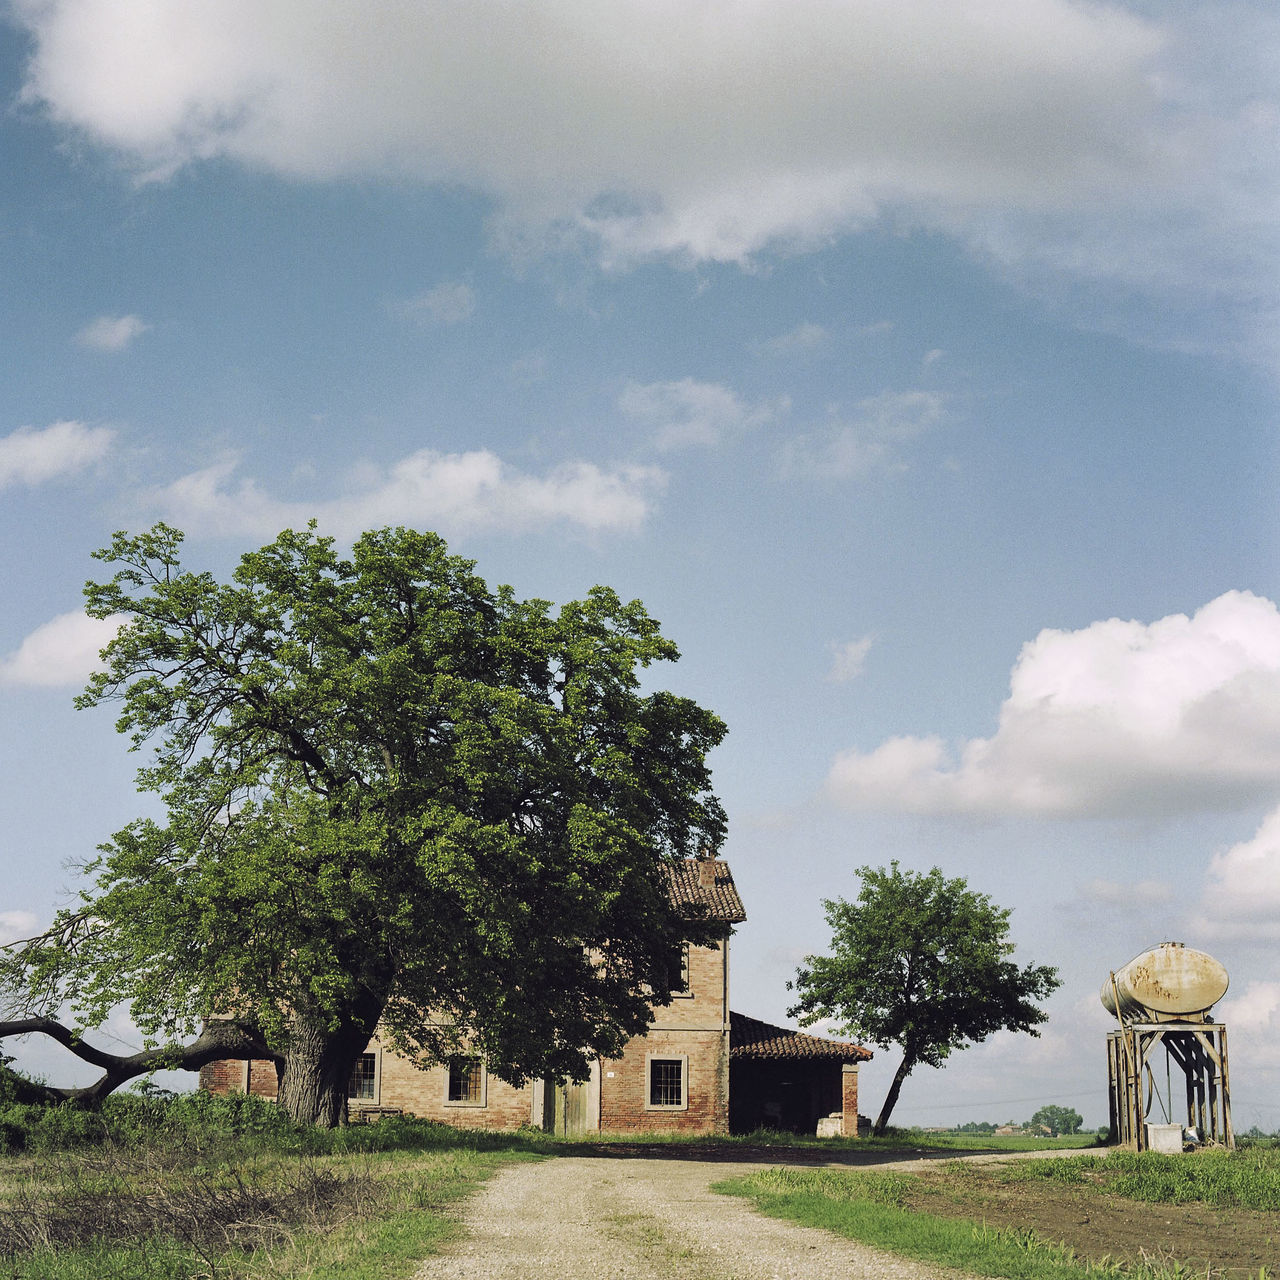 Abandoned Farmhouse Analogue Photography Built Structure Cloud - Sky Deserted Farm Deserted House Landscape Remoteness Rural Scene Sky Tranquility Tree 6x6